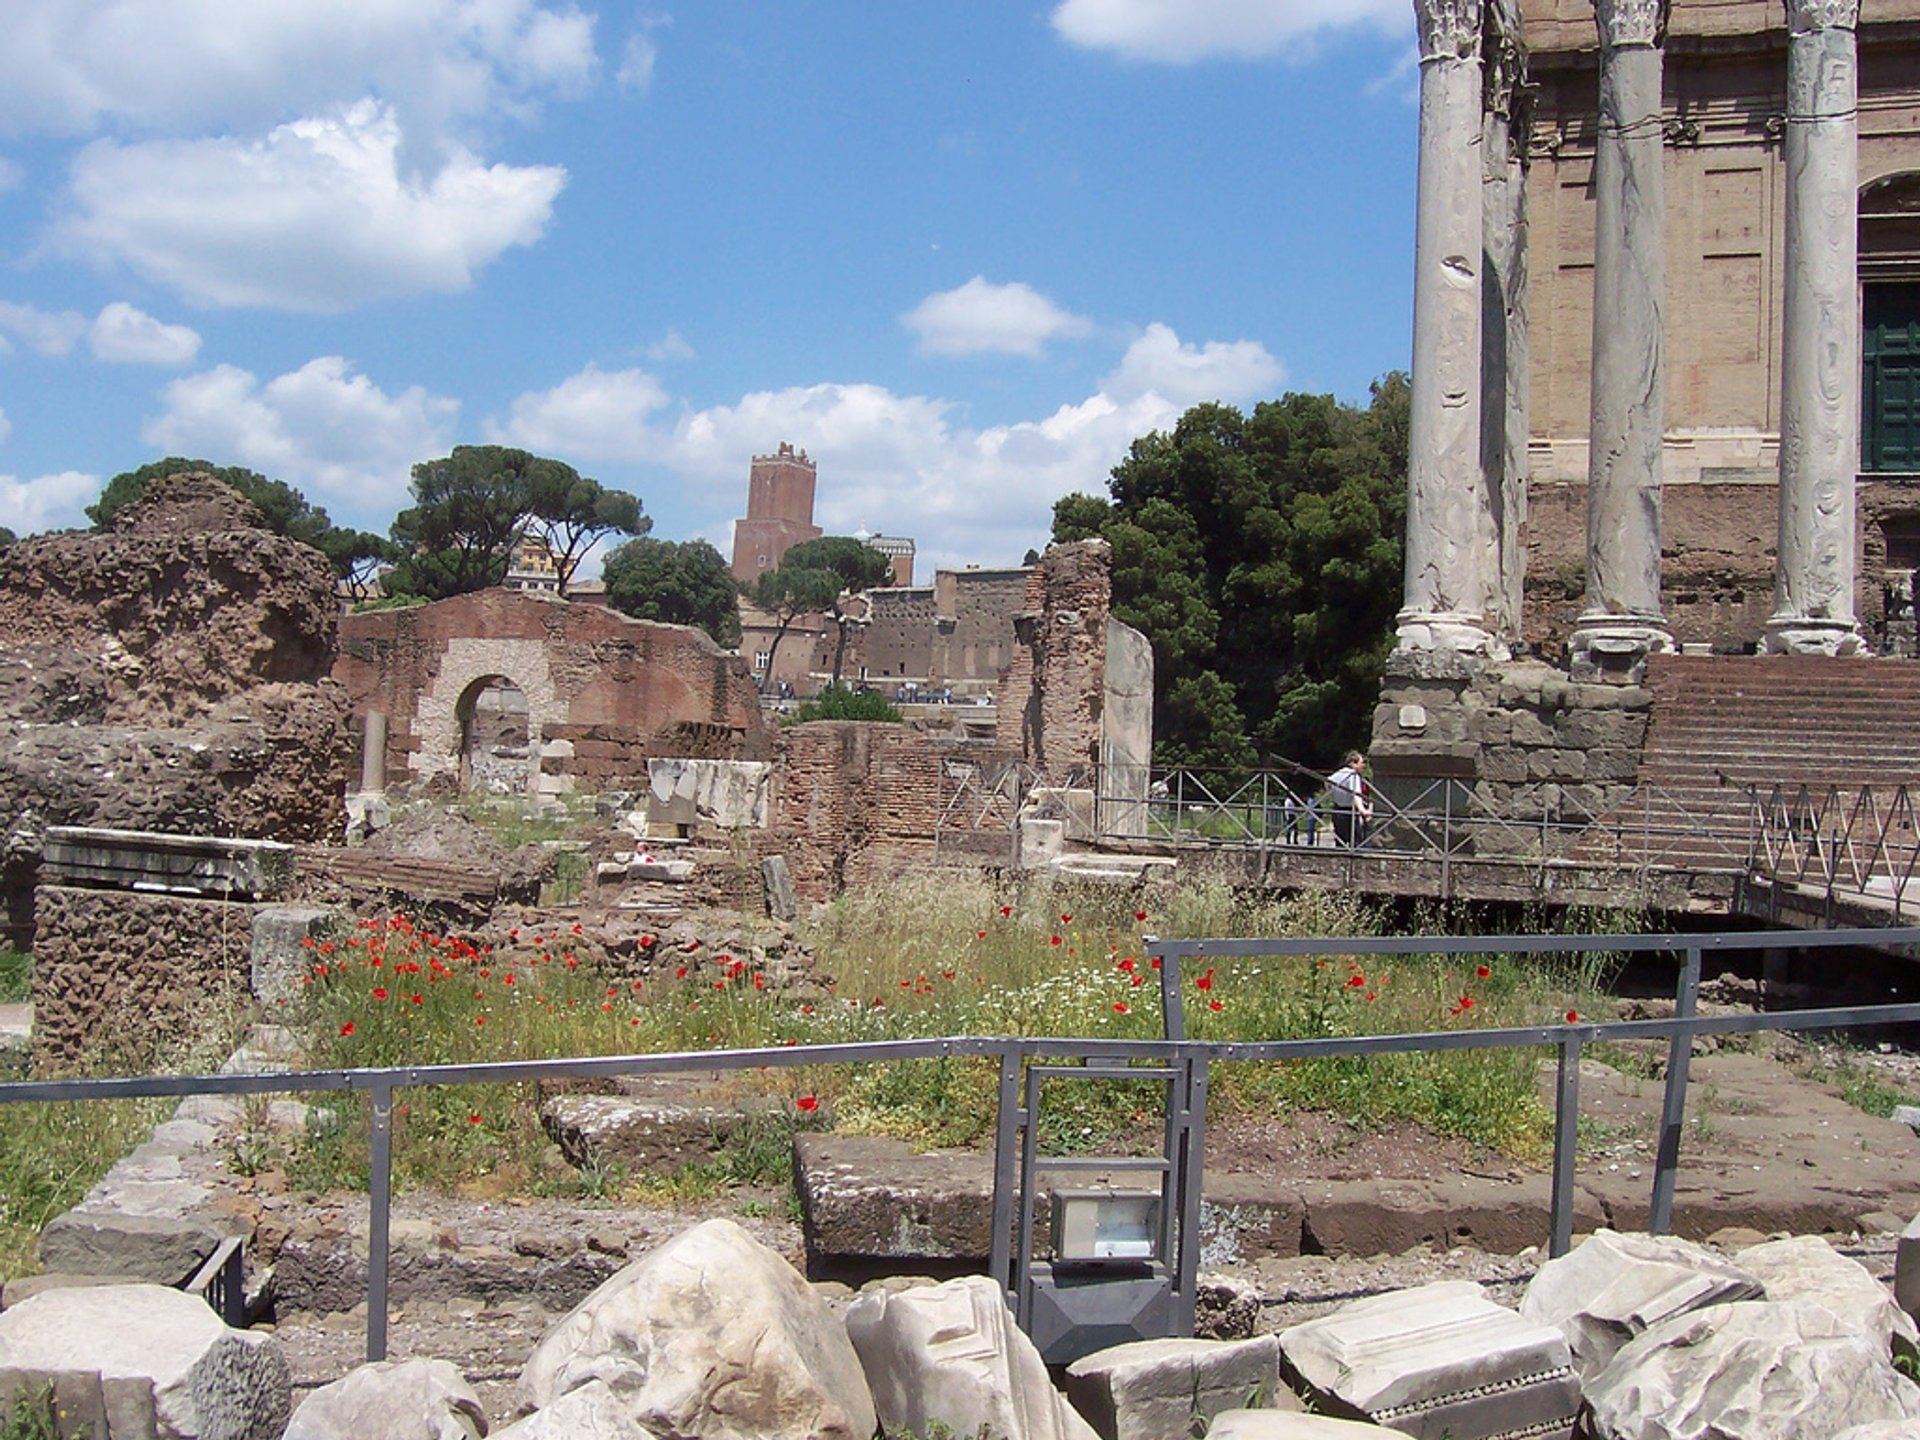 Poppies at the Roman Forum in Rome 2020 - Best Time